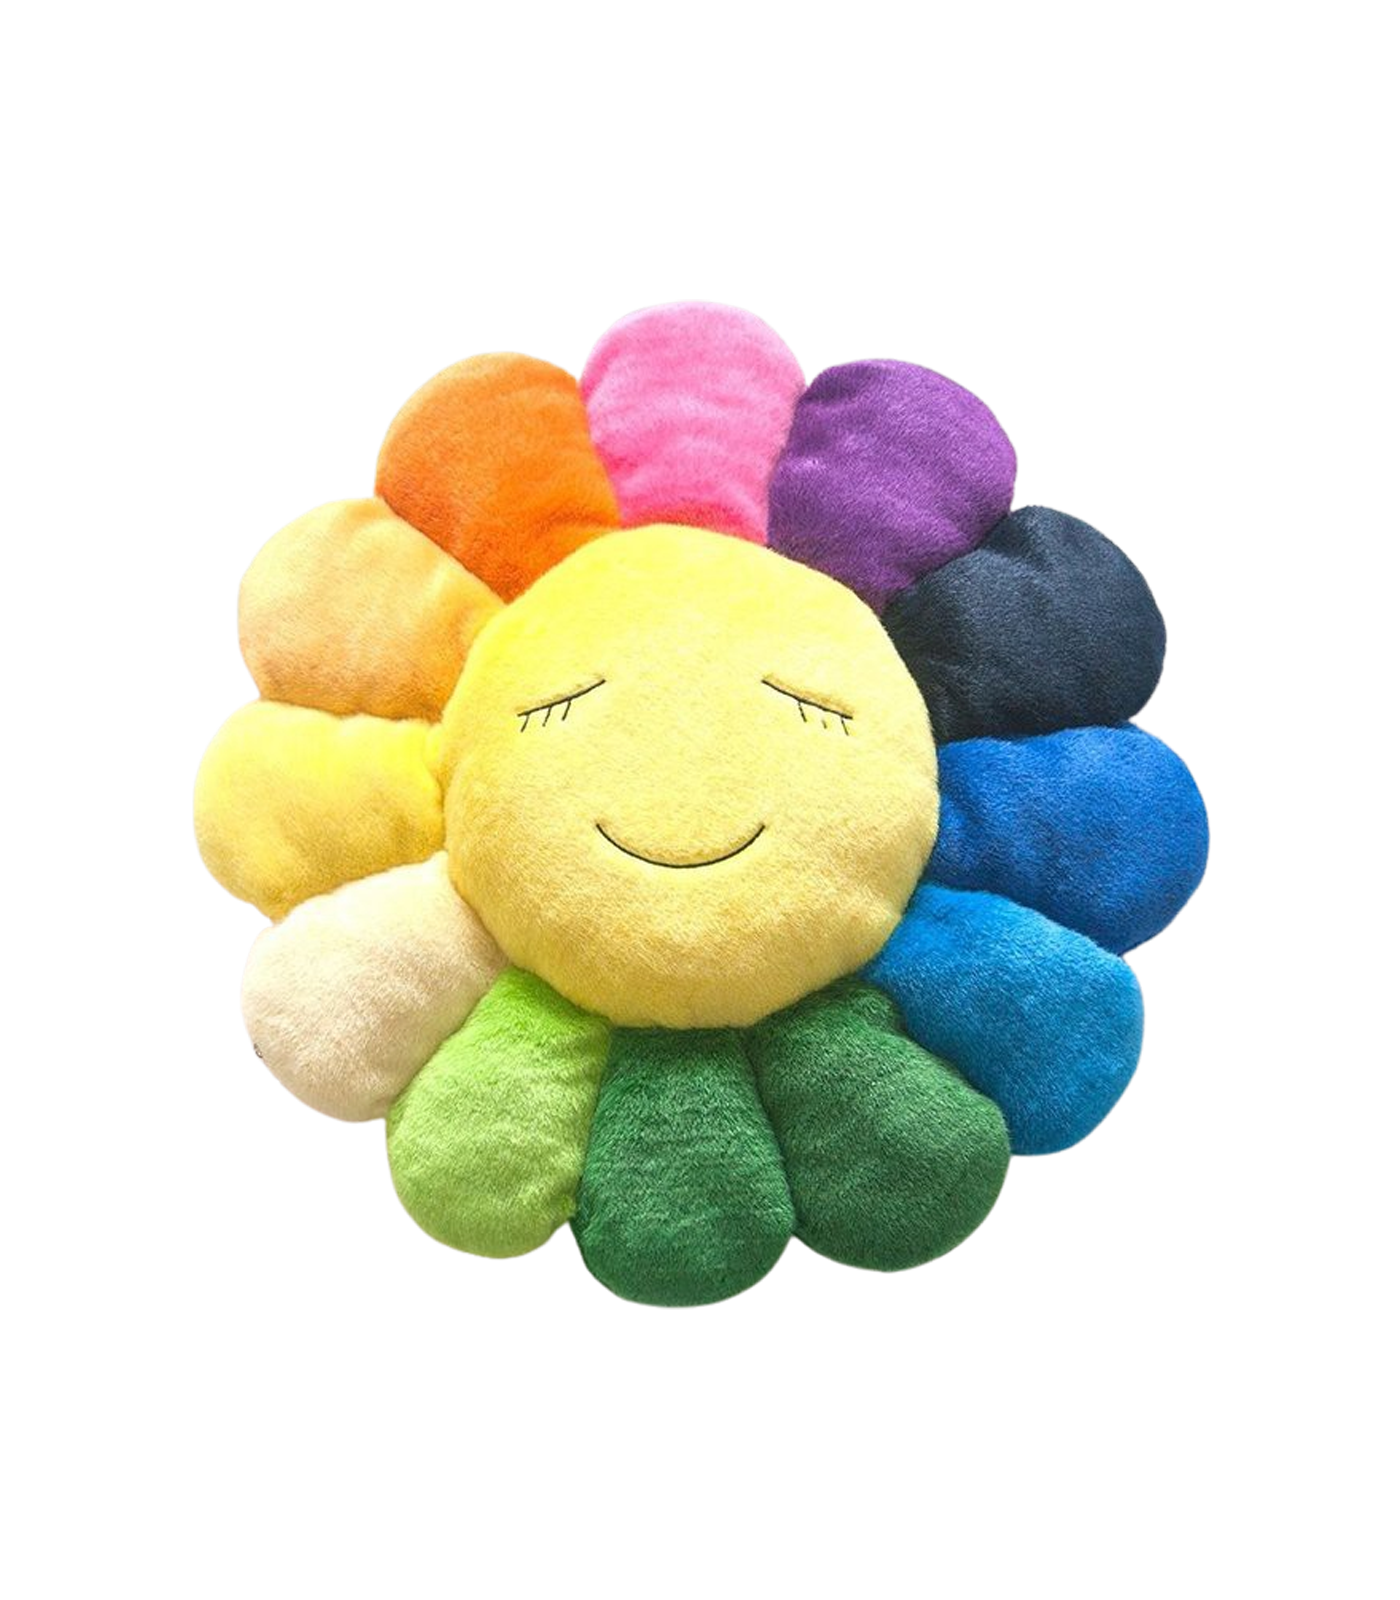 MURAKAMI FLOWER CUSHION 1.5M - RAINBOW